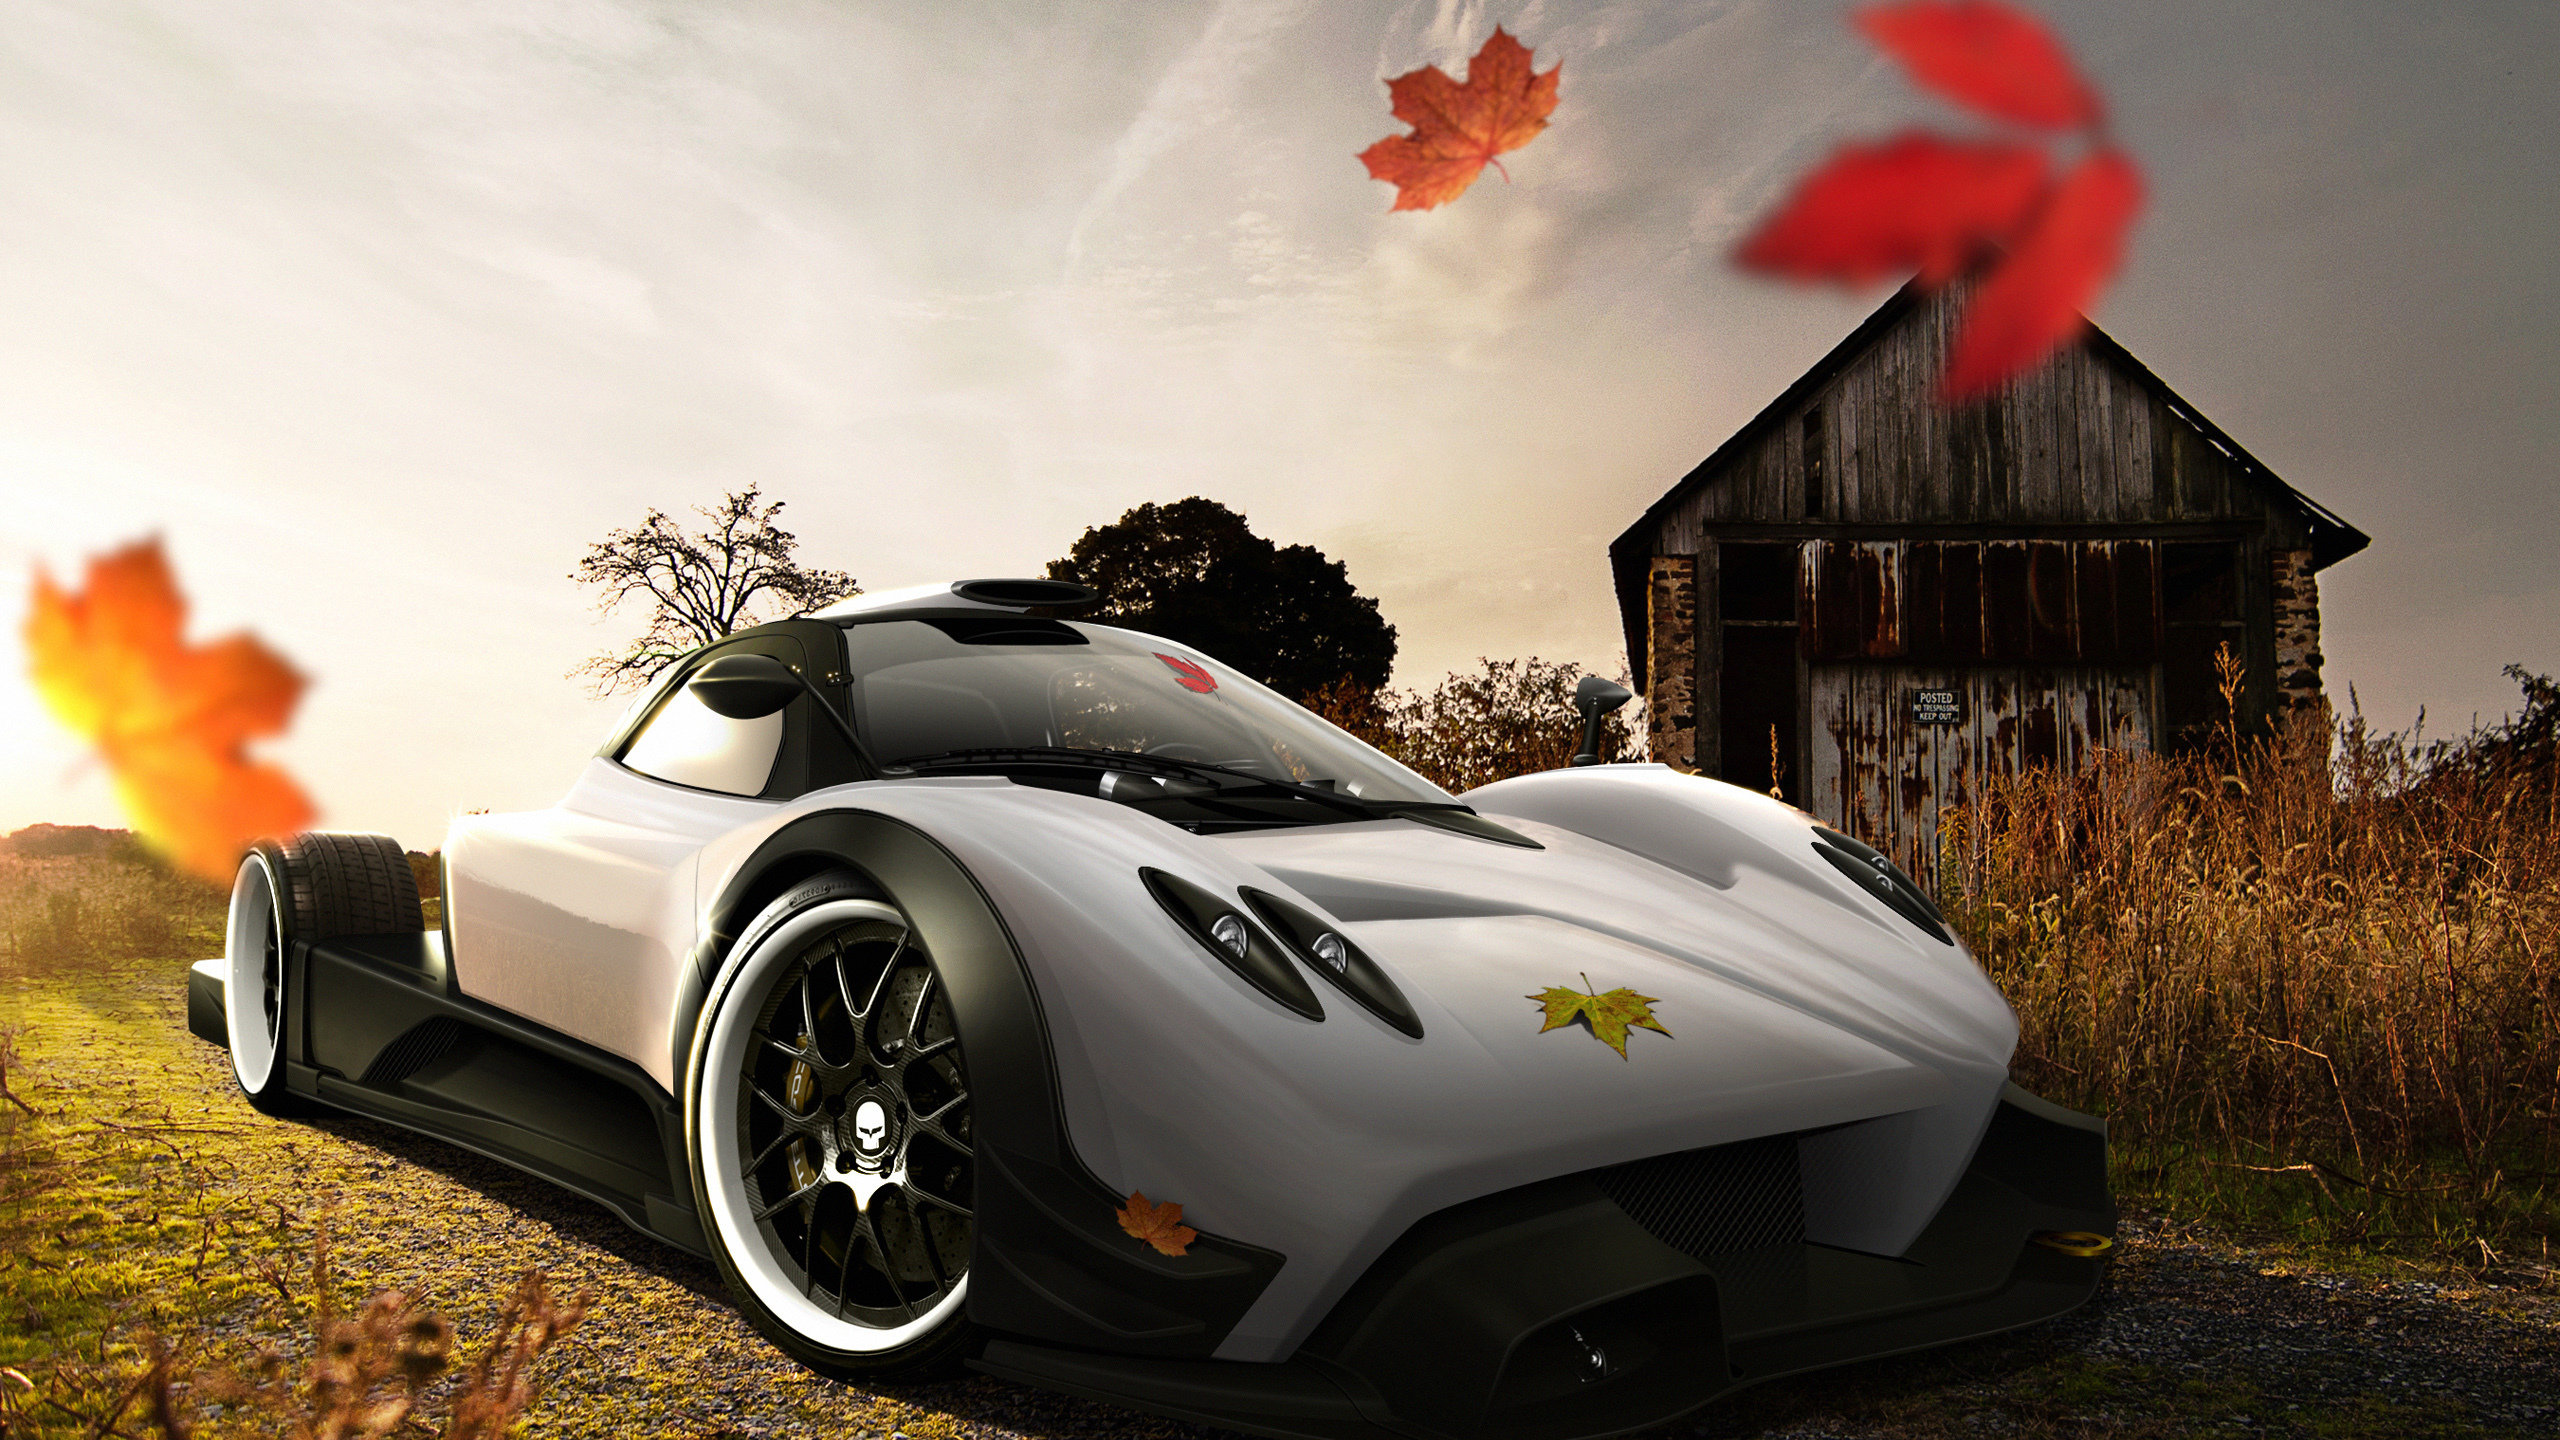 High resolution Pagani Zonda R hd 2560x1440 wallpaper ID:68391 for desktop